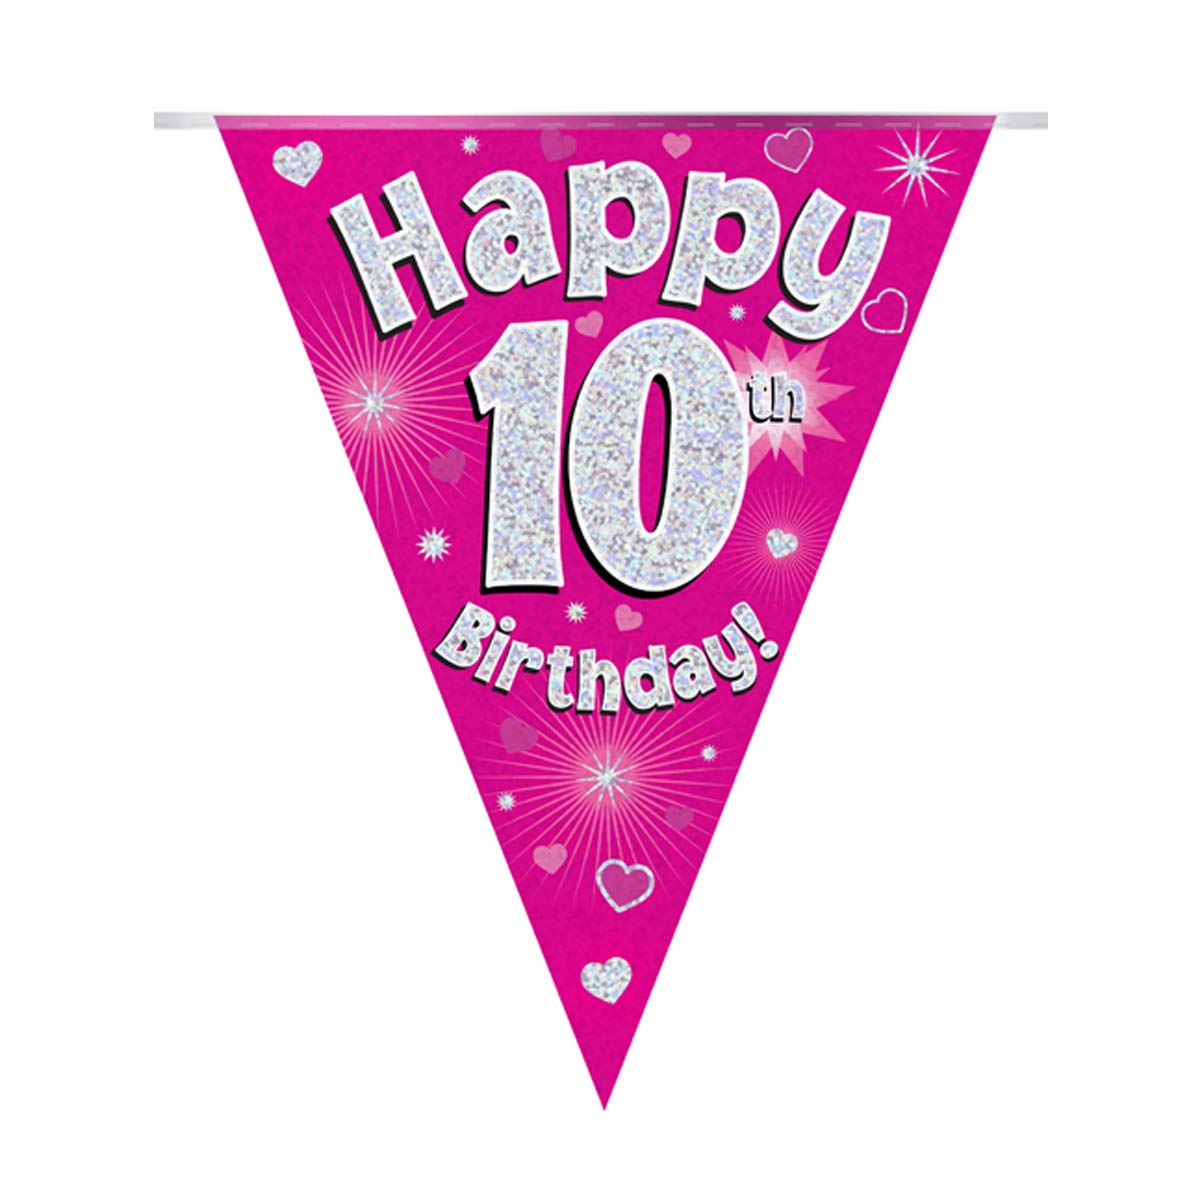 Happy 10th Birthday Pink Holographic Foil Party Bunting 3.9m Long 11 Flags Oaktree